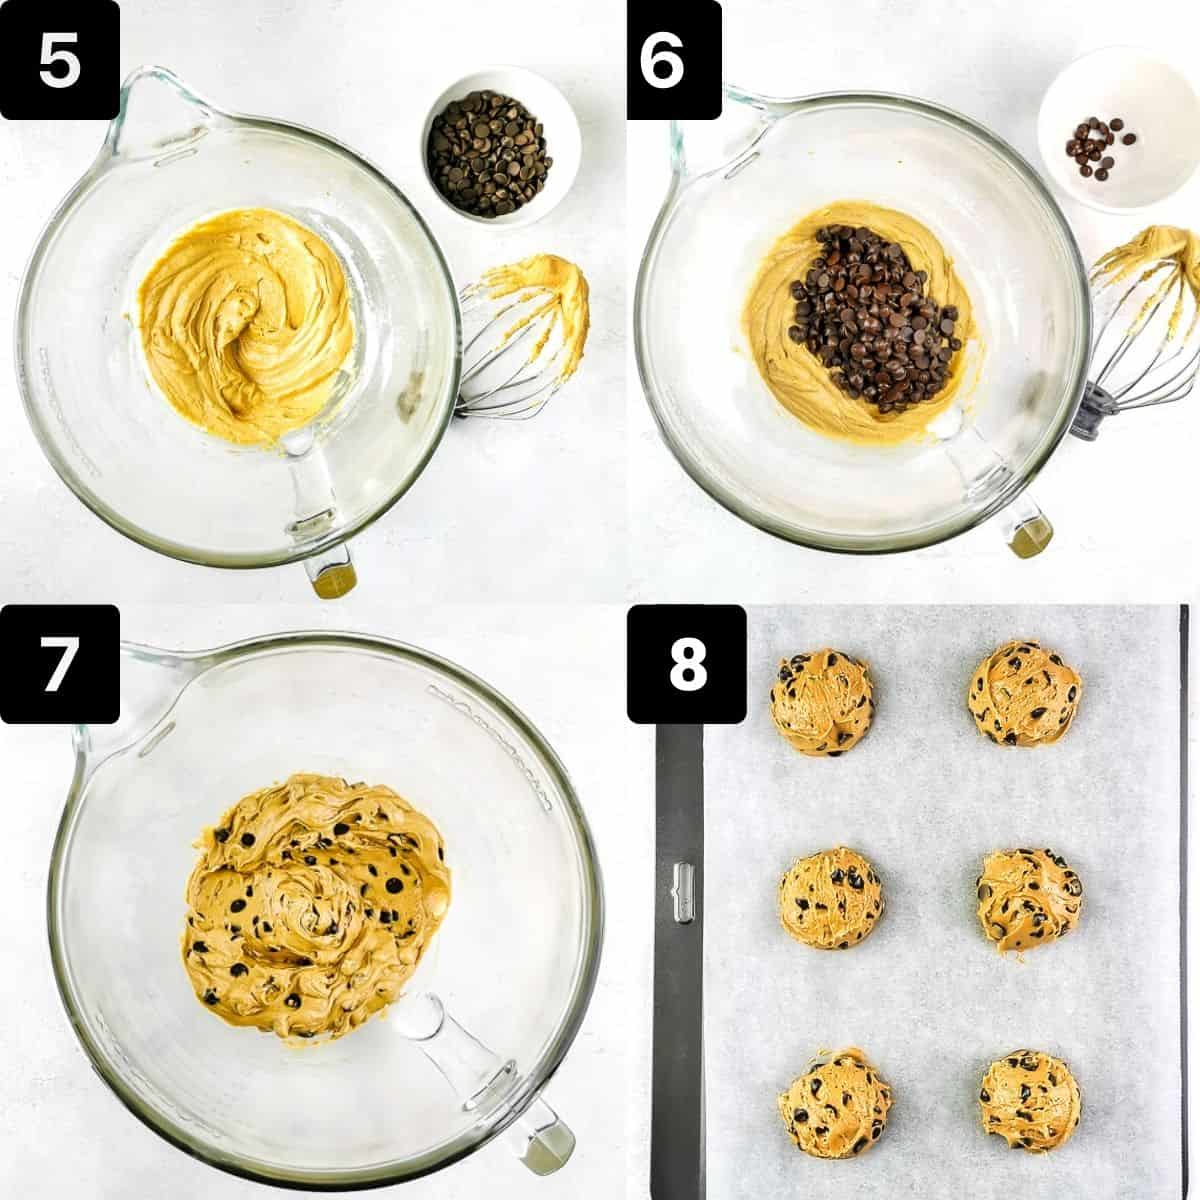 Step by step1 to make the chocolate chip cookies: mix wet and dry ingredients, add choco chips and scoop cookie dough onto a baking sheet.